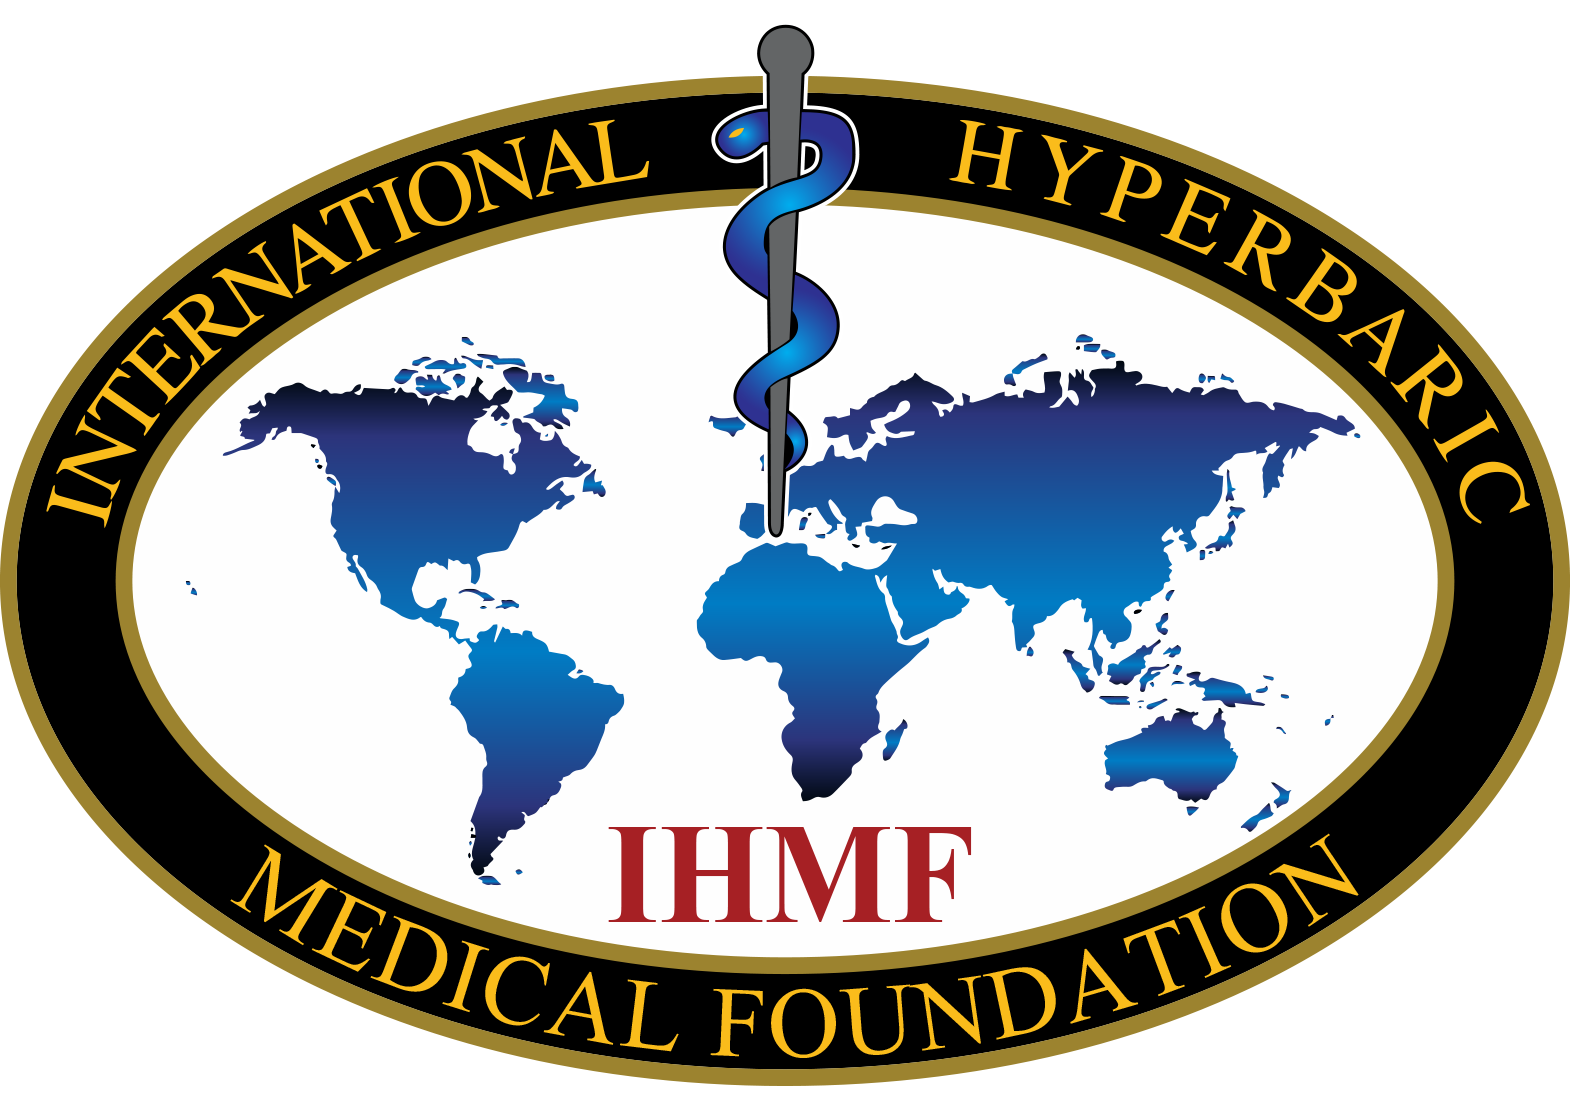 International Symposium for Hyperbaric Medicine